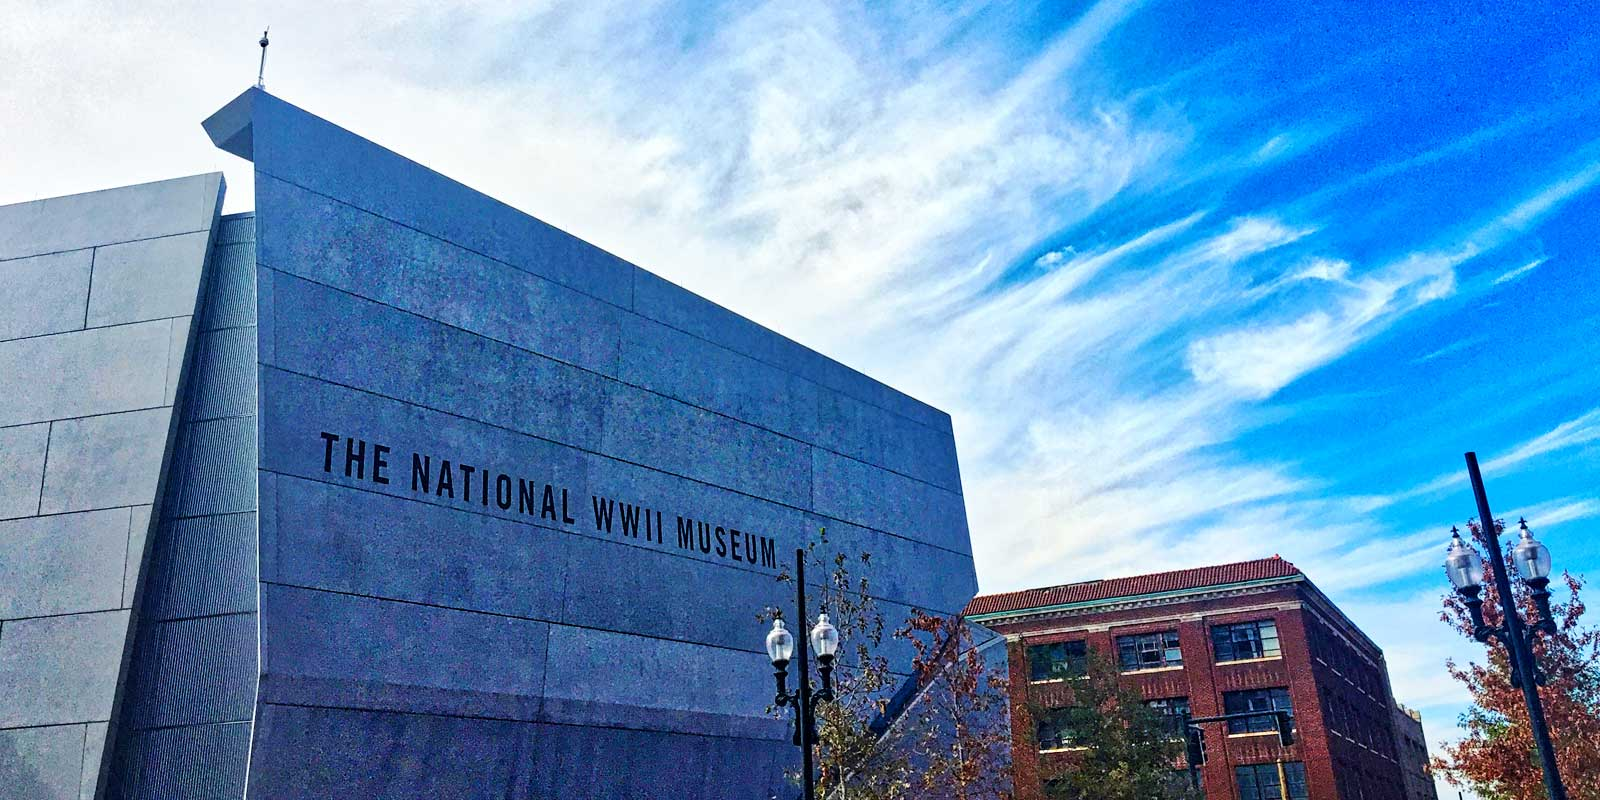 Shot of the main building of the National World War II Museum in New Orleans' Arts District.